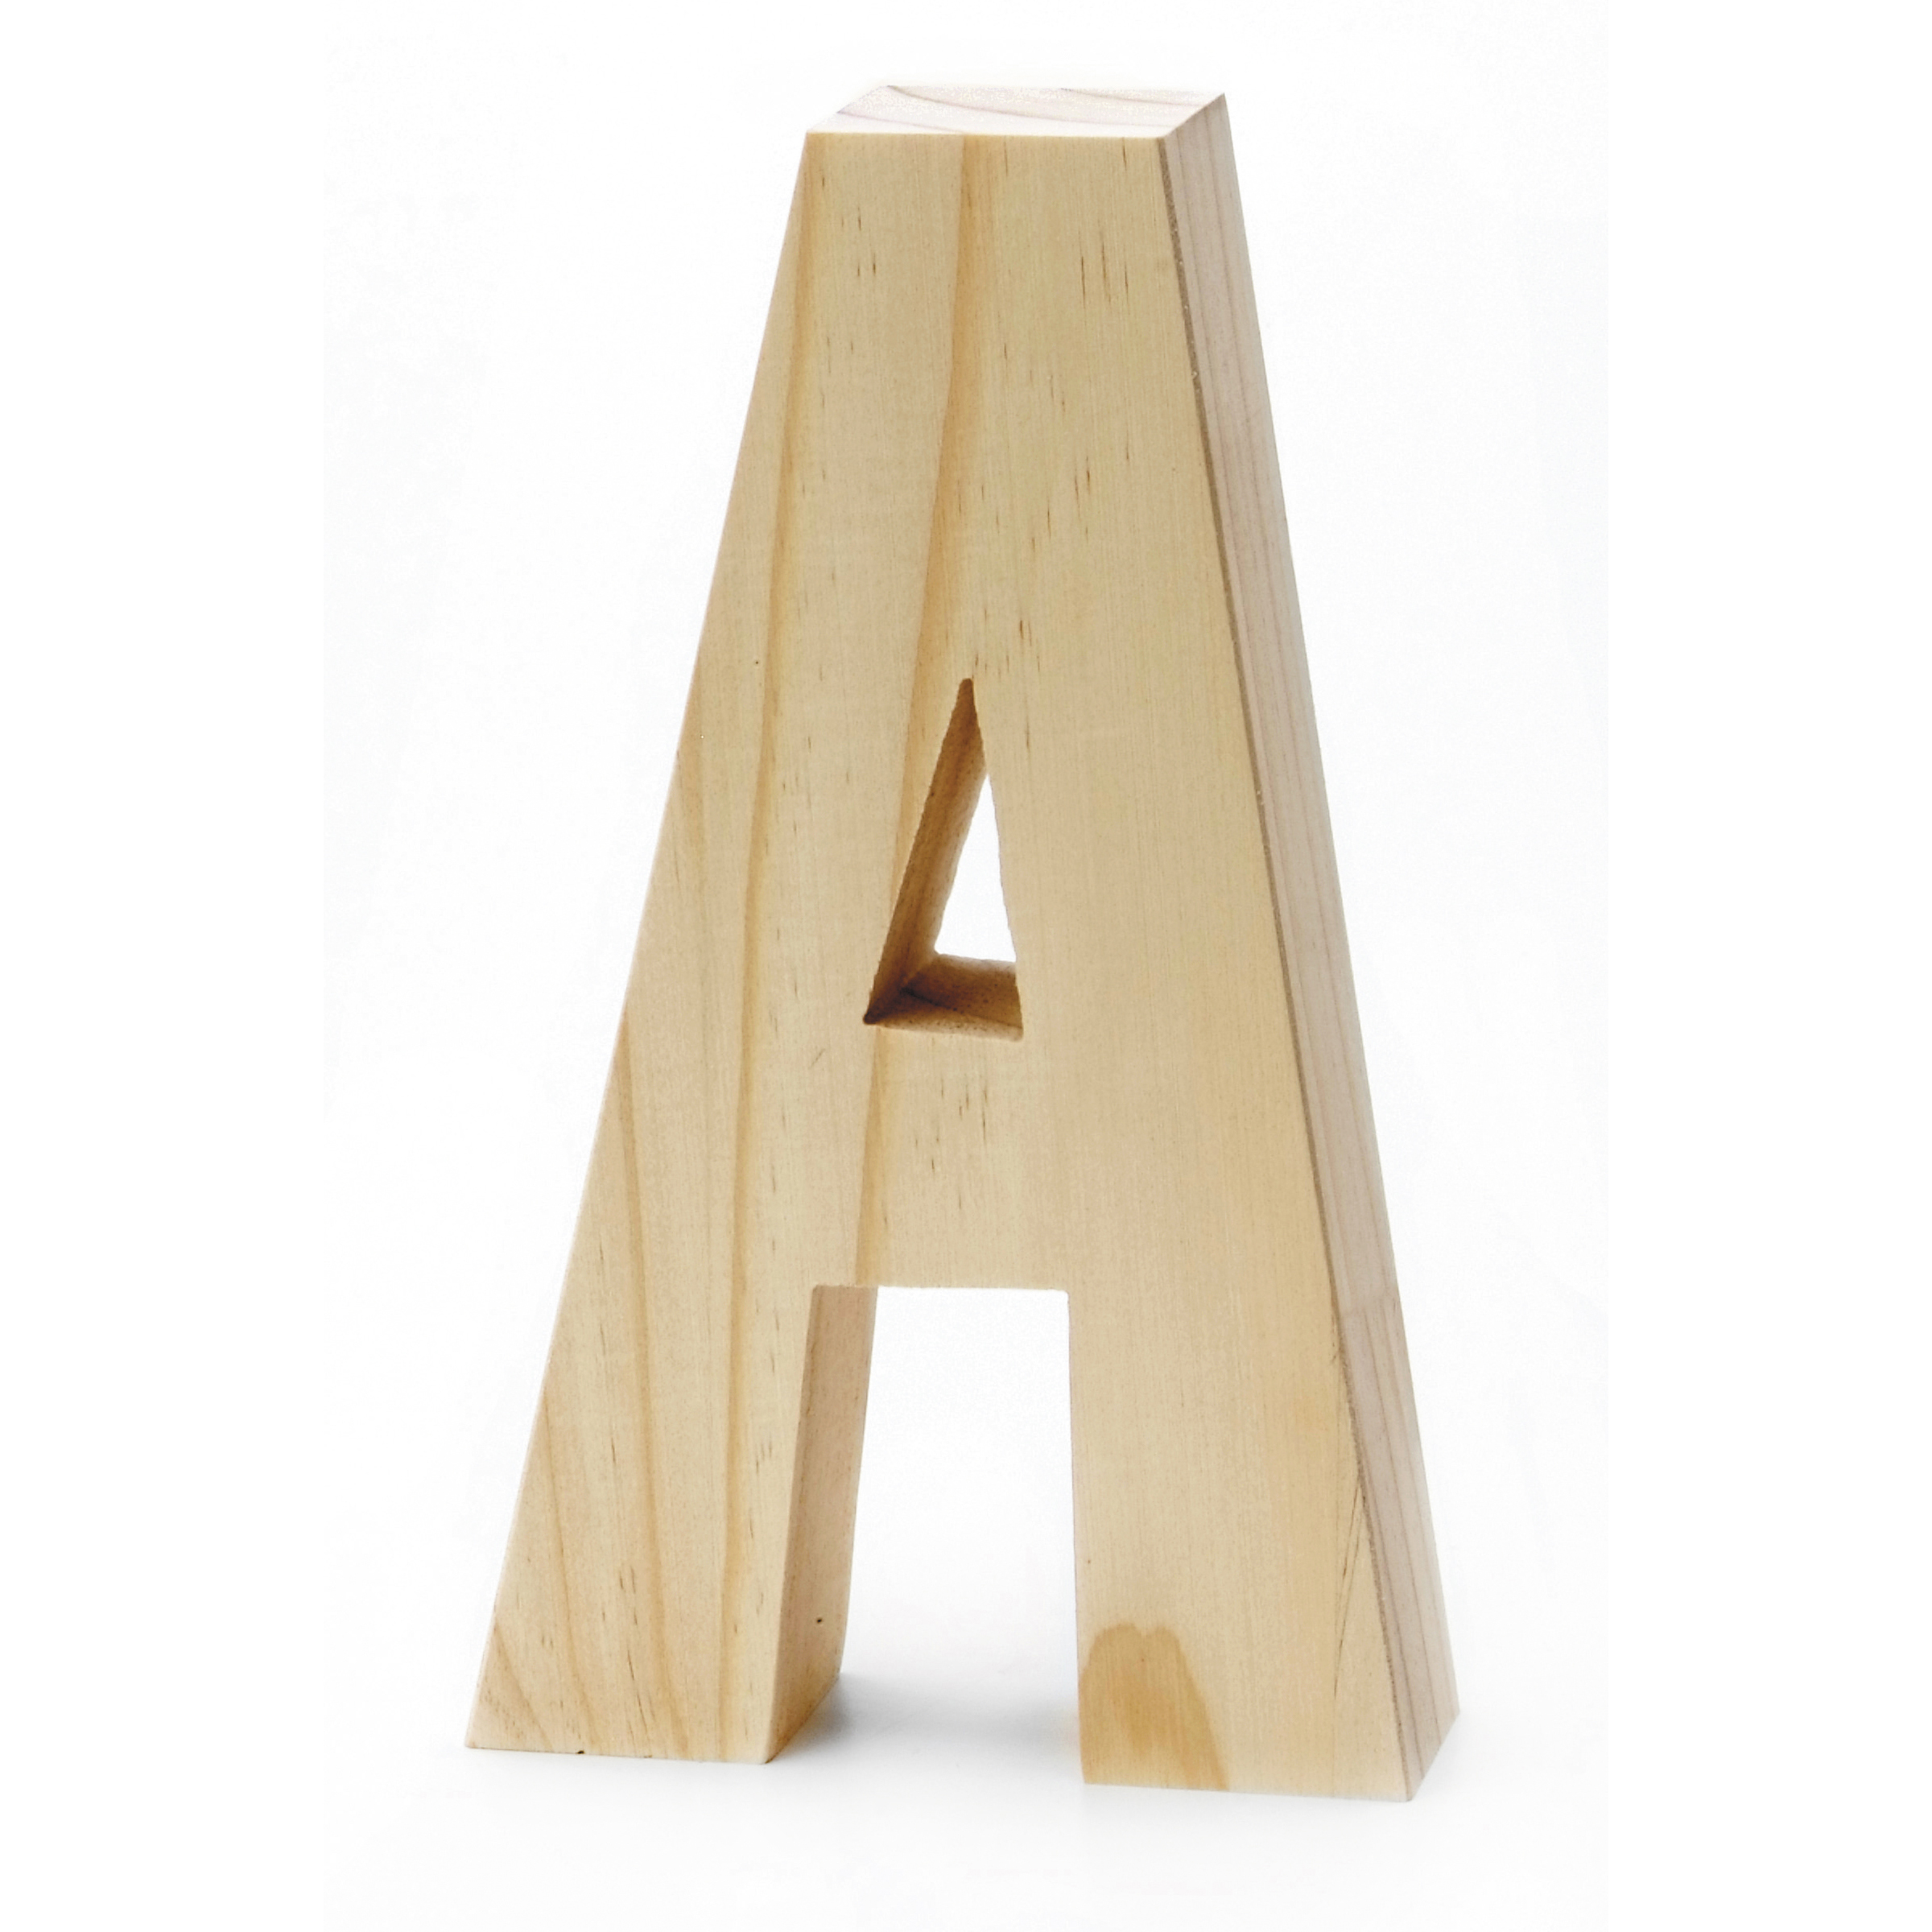 wooden letter a - People.davidjoel.co